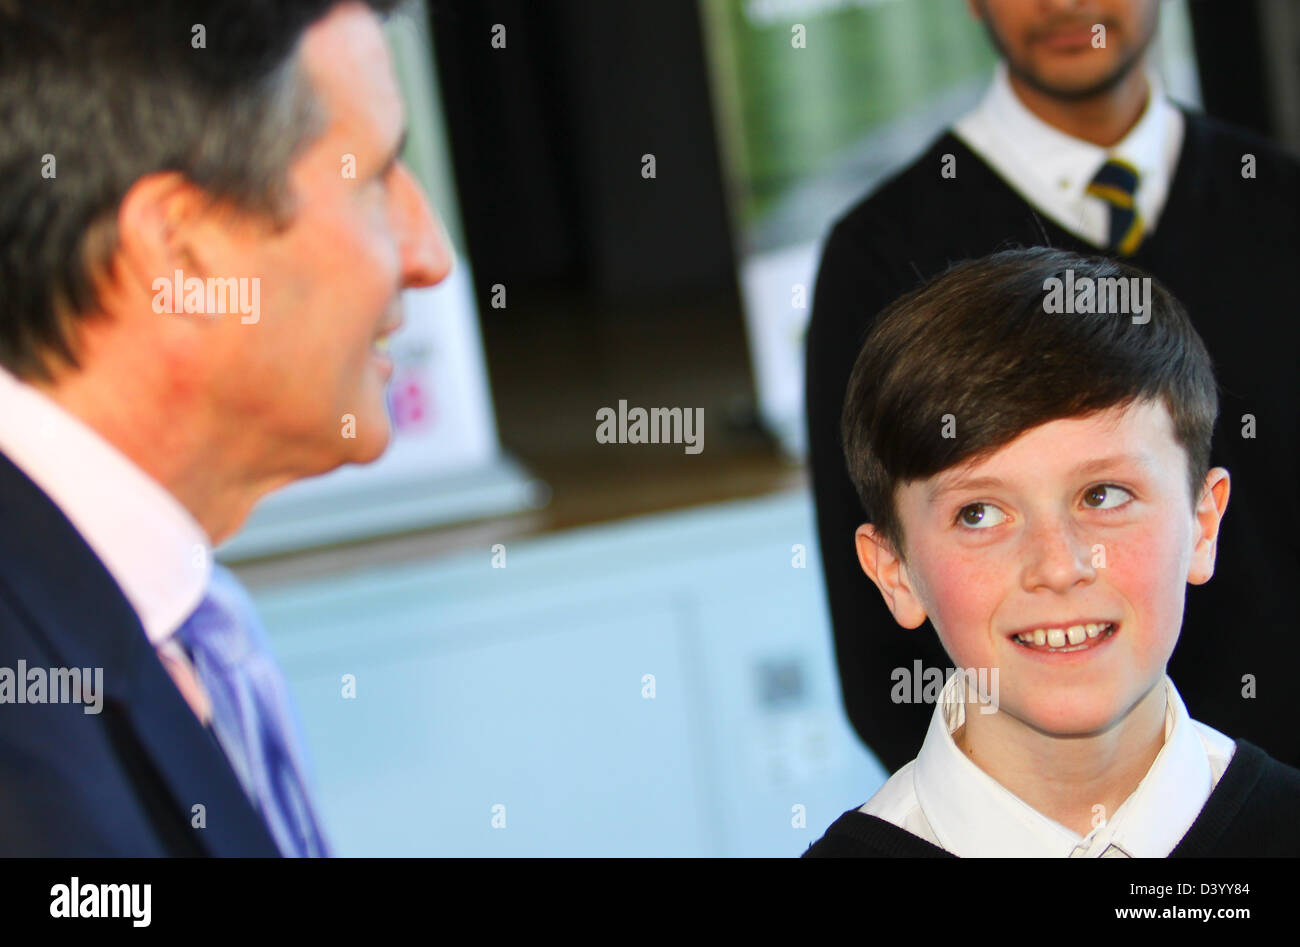 Glasgow, UK. 27th February 2013.  Seb Coe visits Shawlands Academy Glasgow to support Glasgow's bid to host - Stock Image